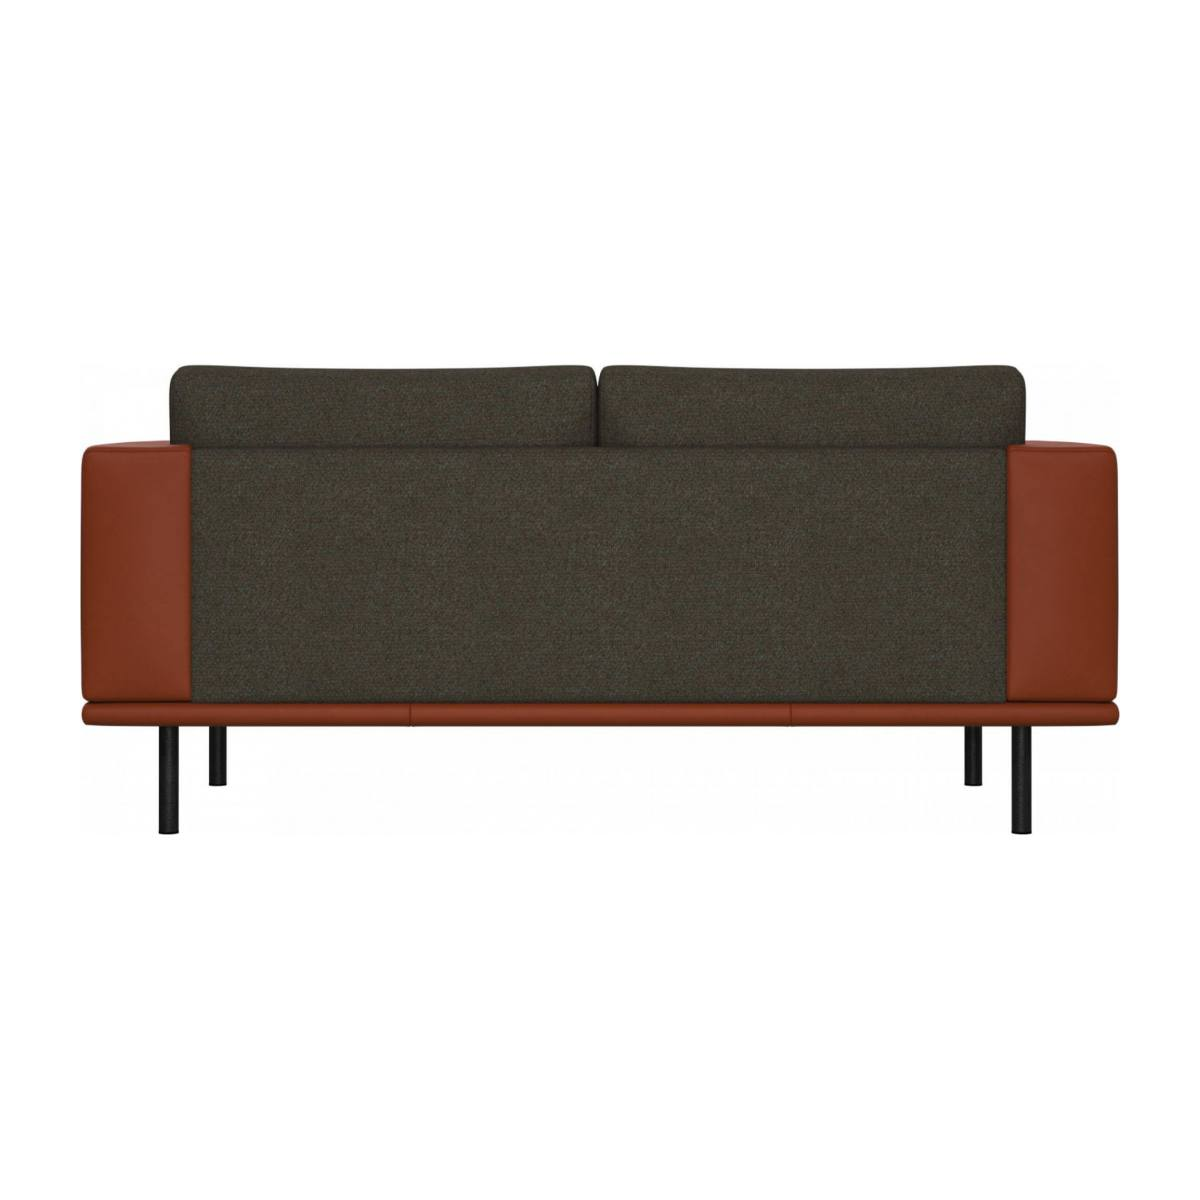 2 seater sofa in Lecce fabric, slade grey with base and armrests in brown leather n°4